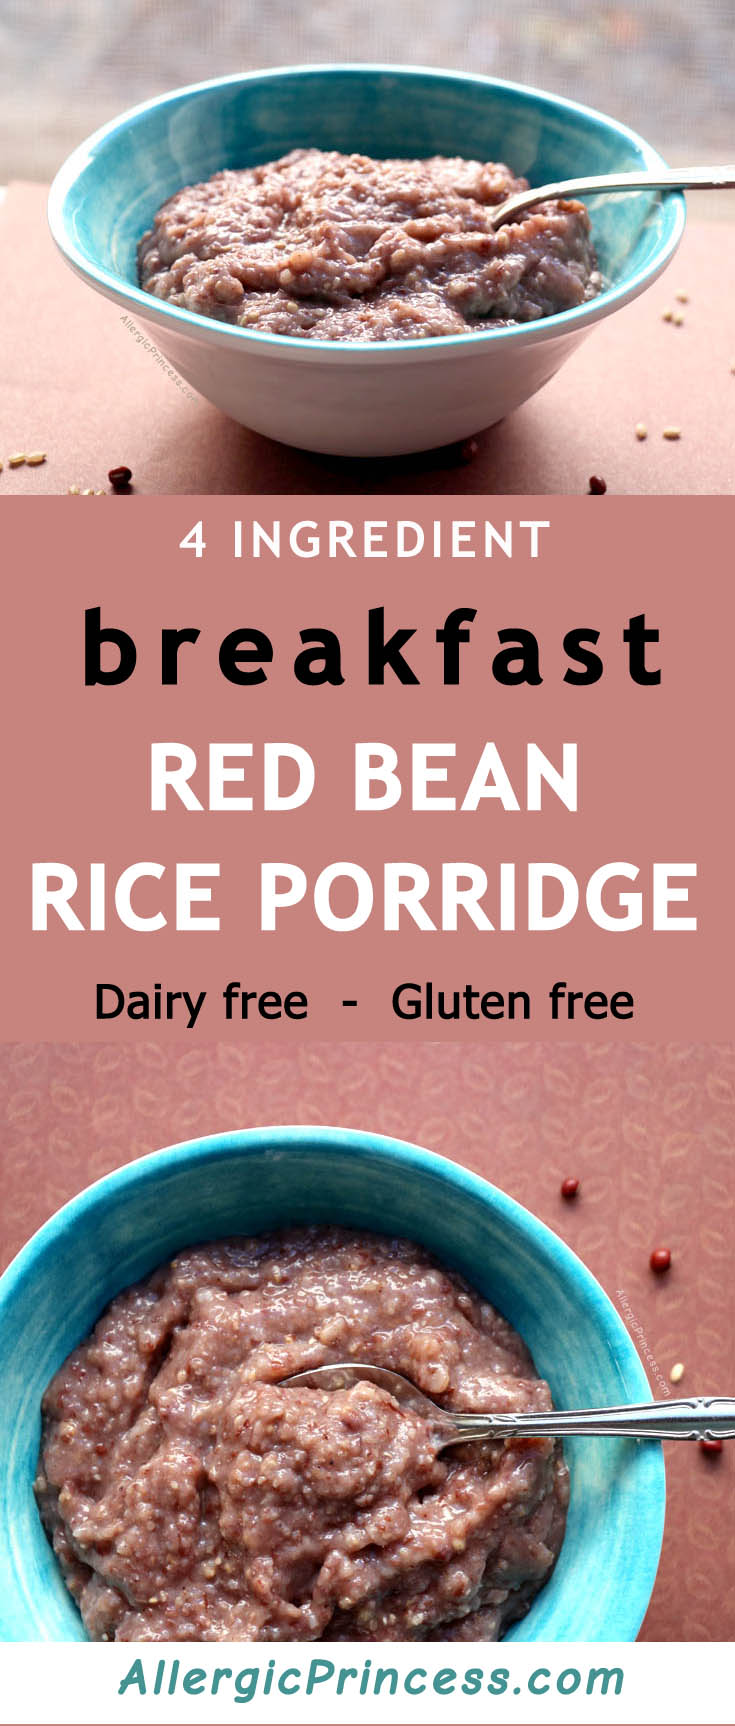 A great oatmeal alternative, this protein filled red bean rice porridge is delicious!